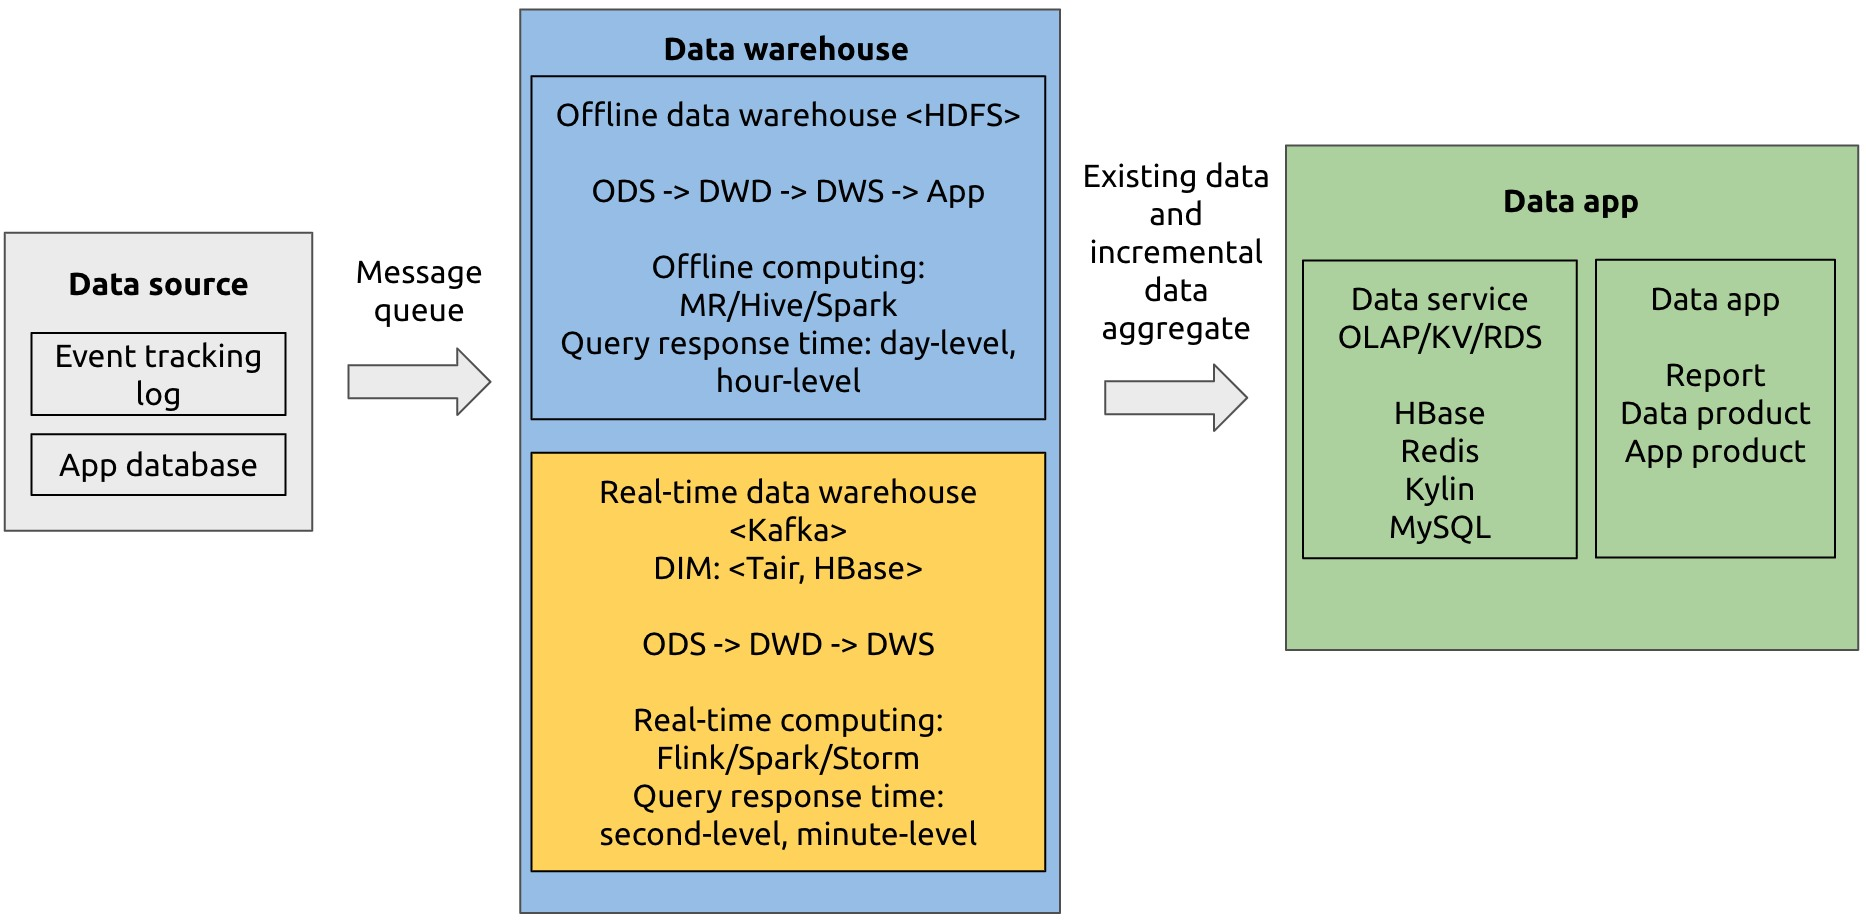 Lambda architecture for real-time data warehousing